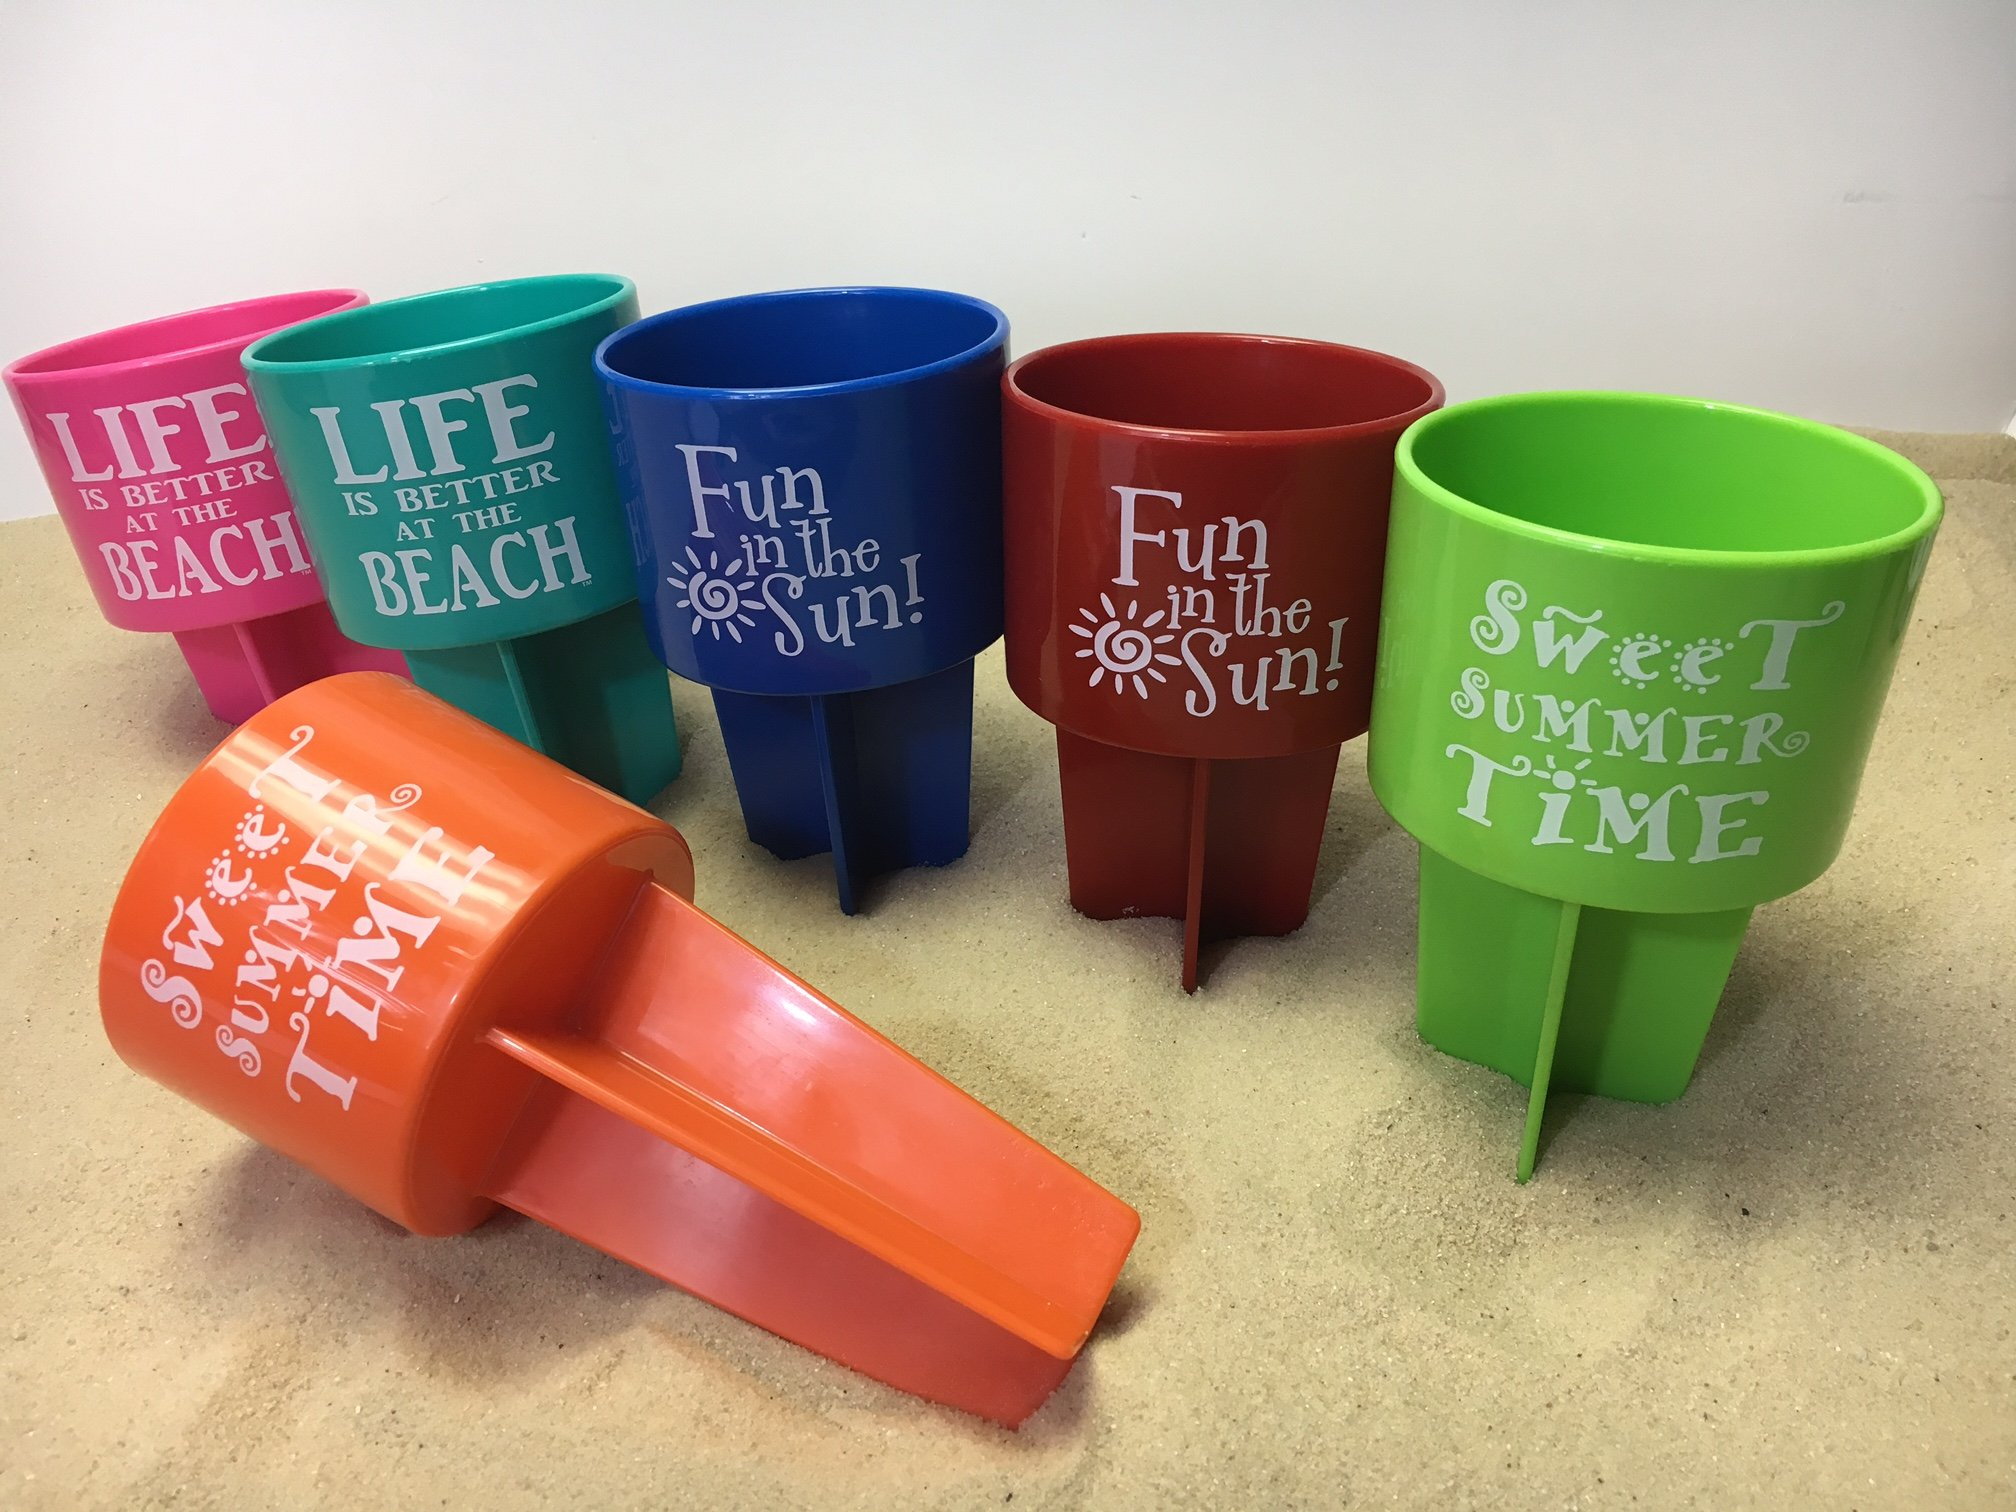 SPIKER Lifestyle Holder 6 pack assortment: 2 Life is Better at the Beach, 2 Fun in the Sun, 2 Sweet Summer Time (share with Family & Friends)